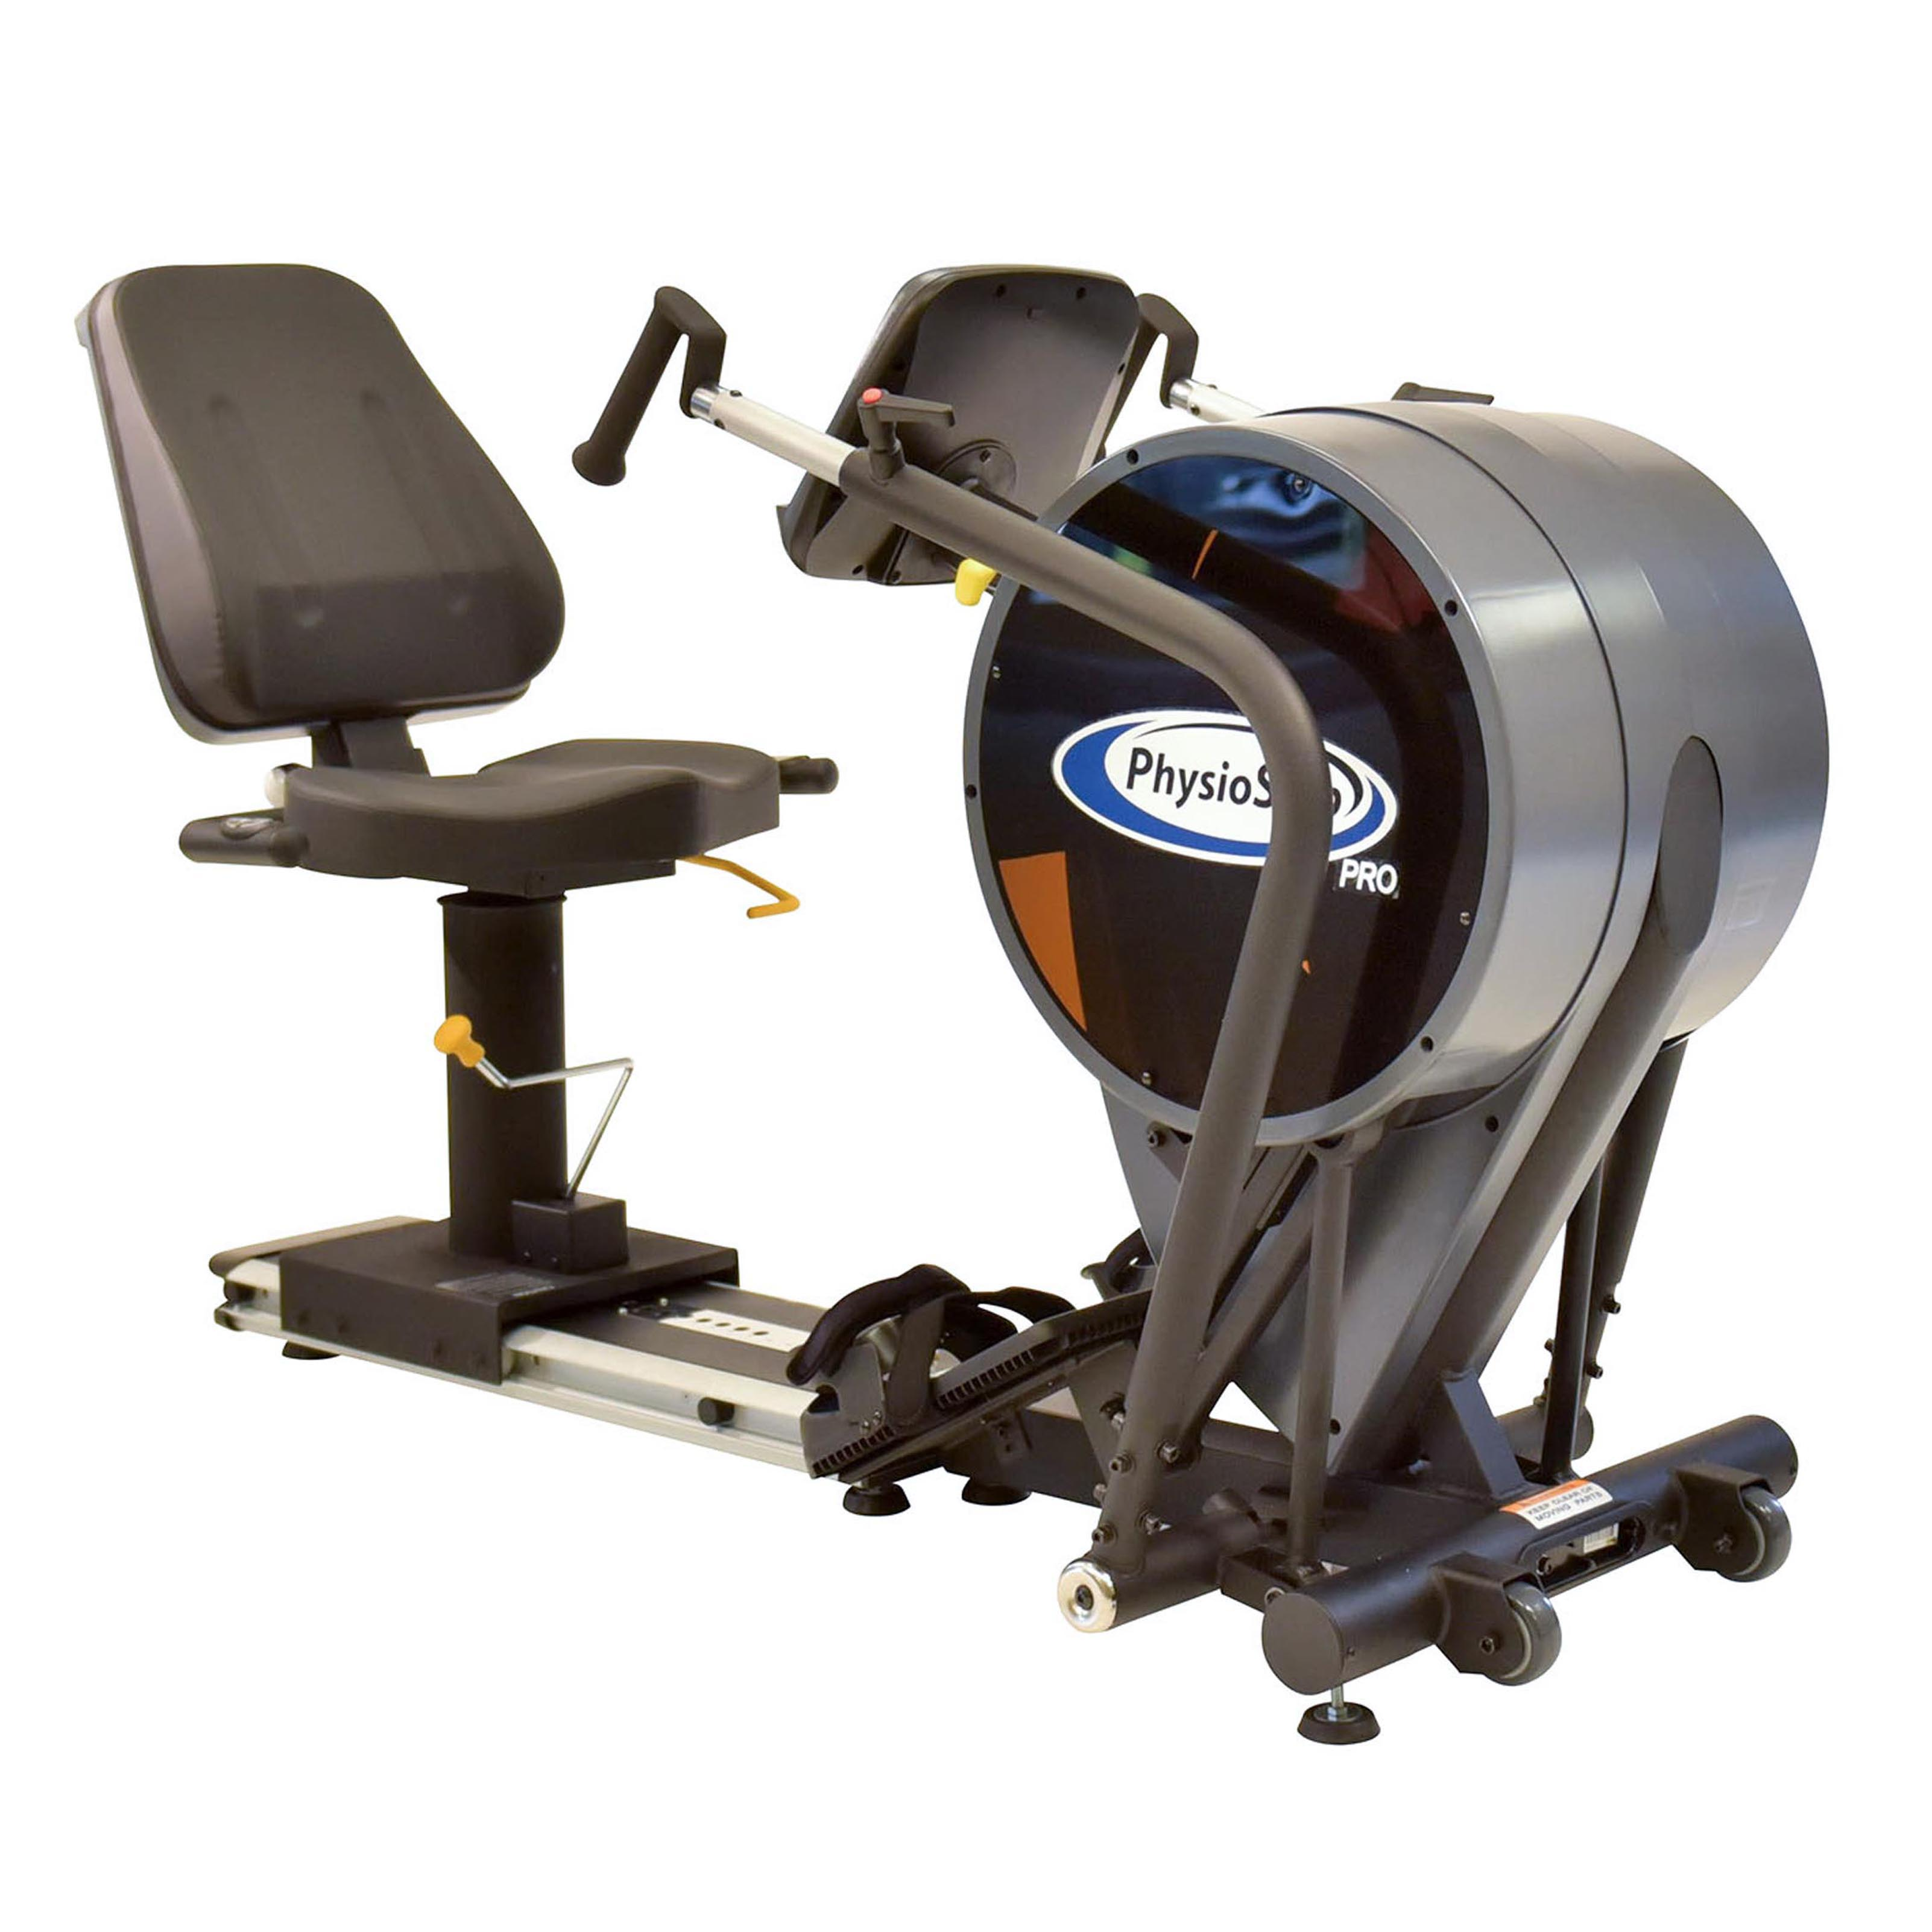 PhysioStep PRO Recumbent Stepper Cross Trainer Main